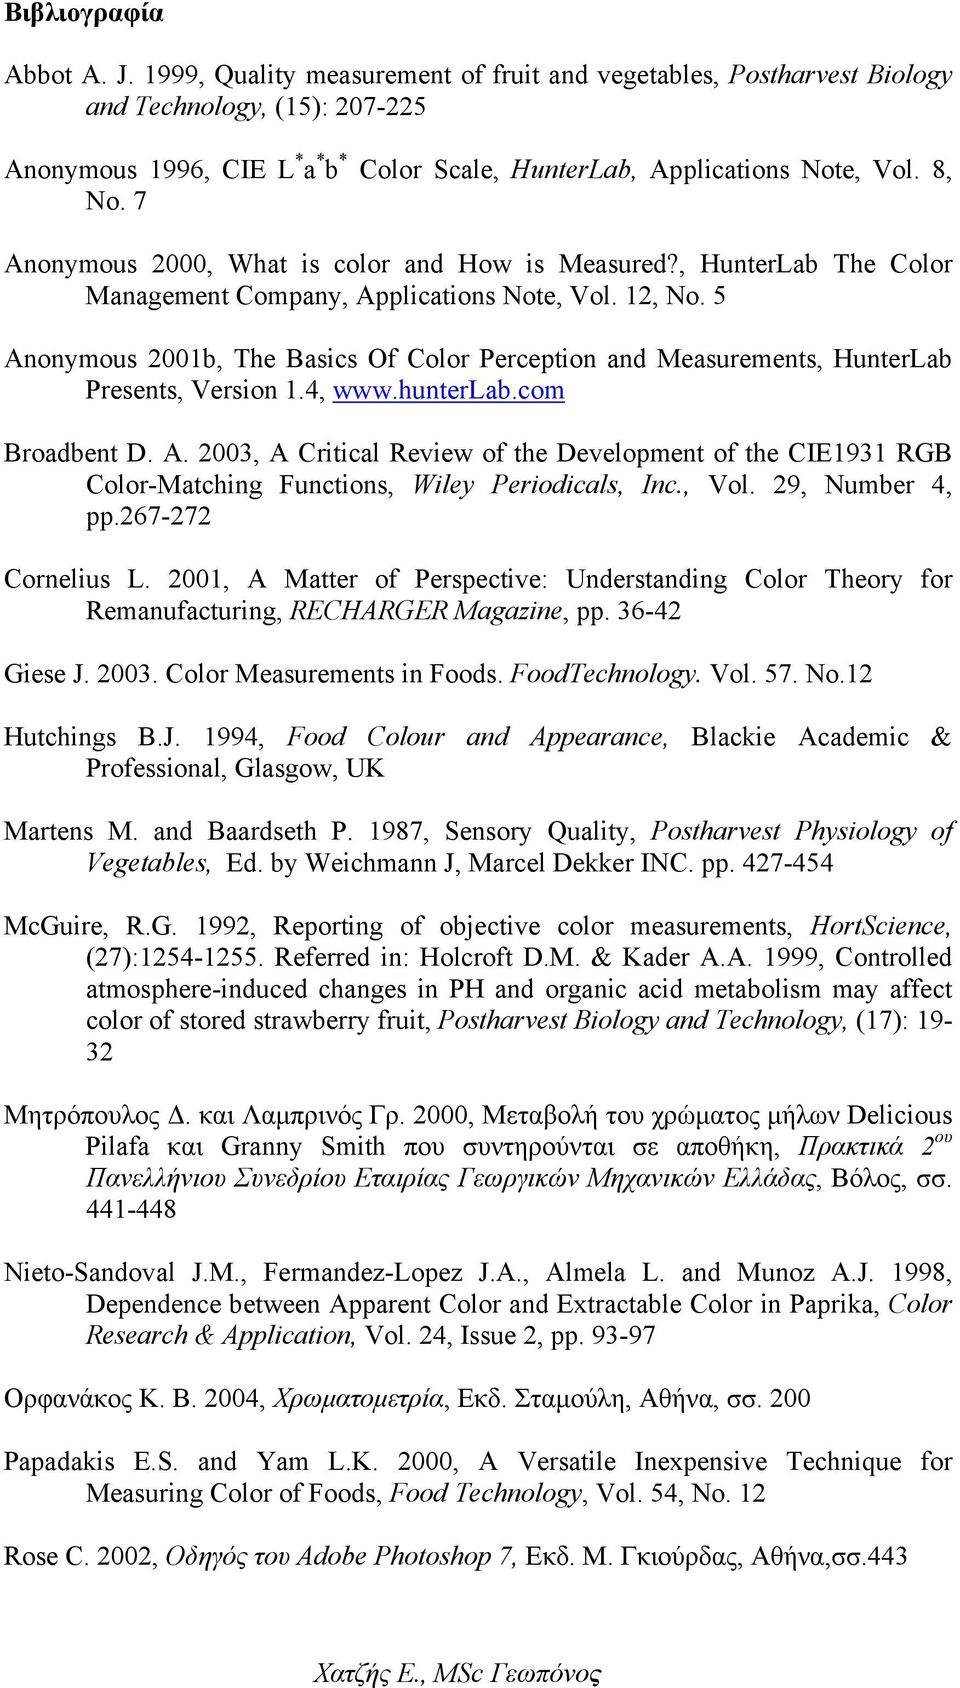 5 Anonymous 2001b, The Basics Of Color Perception and Measurements, HunterLab Presents, Version 1.4, www.hunterlab.com Broadbent D. A. 2003, A Critical Review of the Development of the CIE1931 RGB Color-Matching Functions, Wiley Periodicals, Inc.